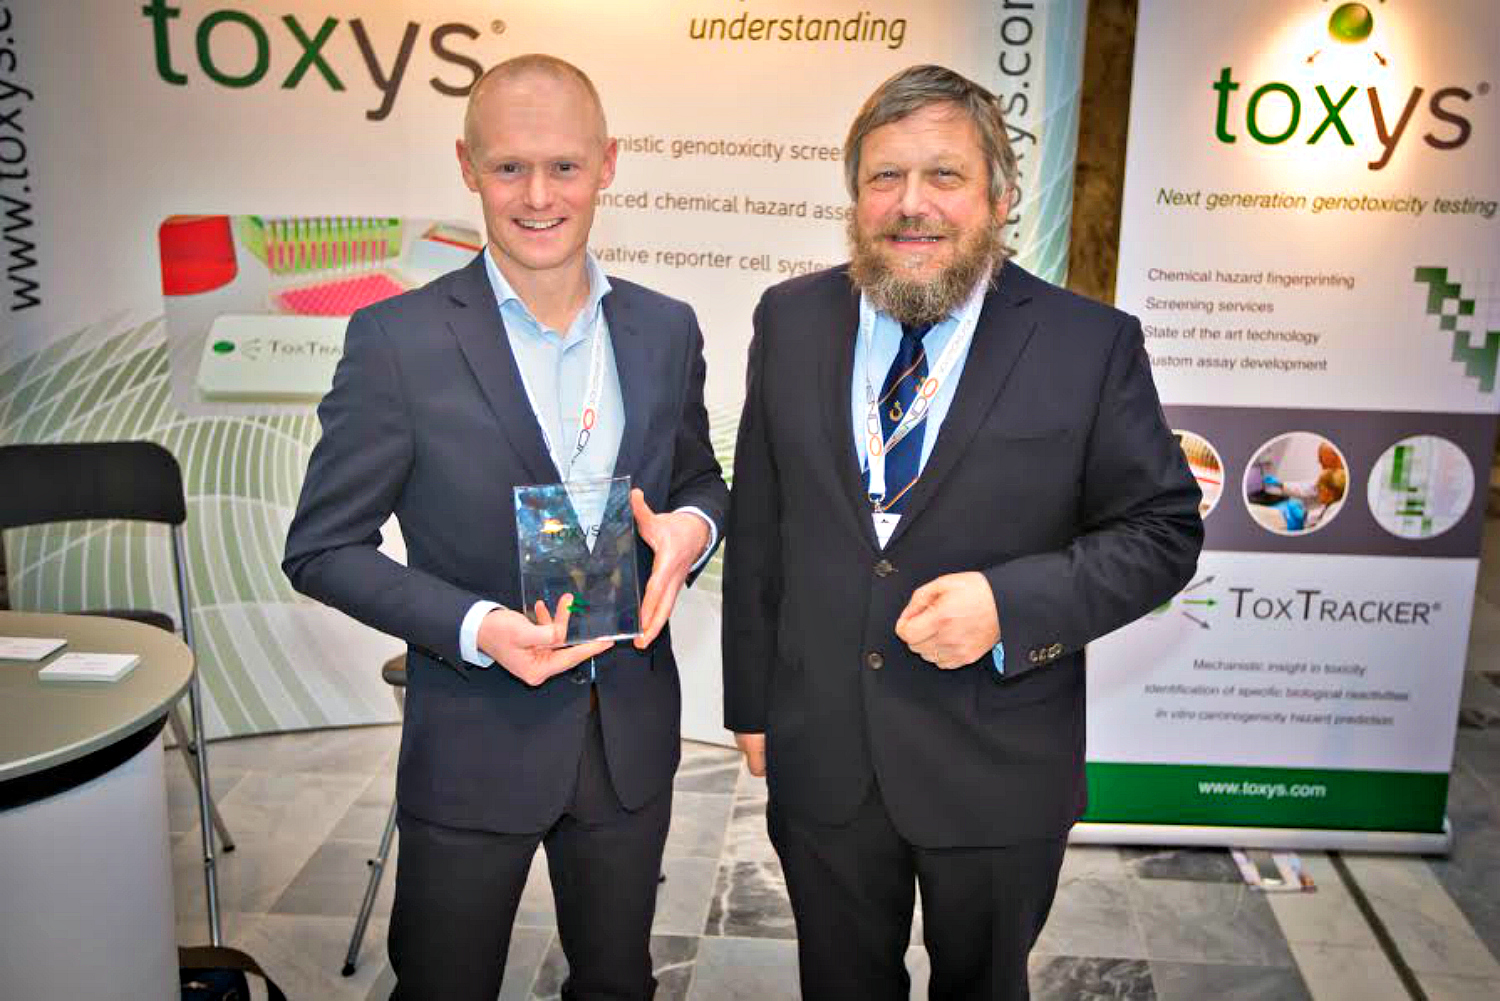 Biotech startup Toxys gets series A funding to develop toxicological tests